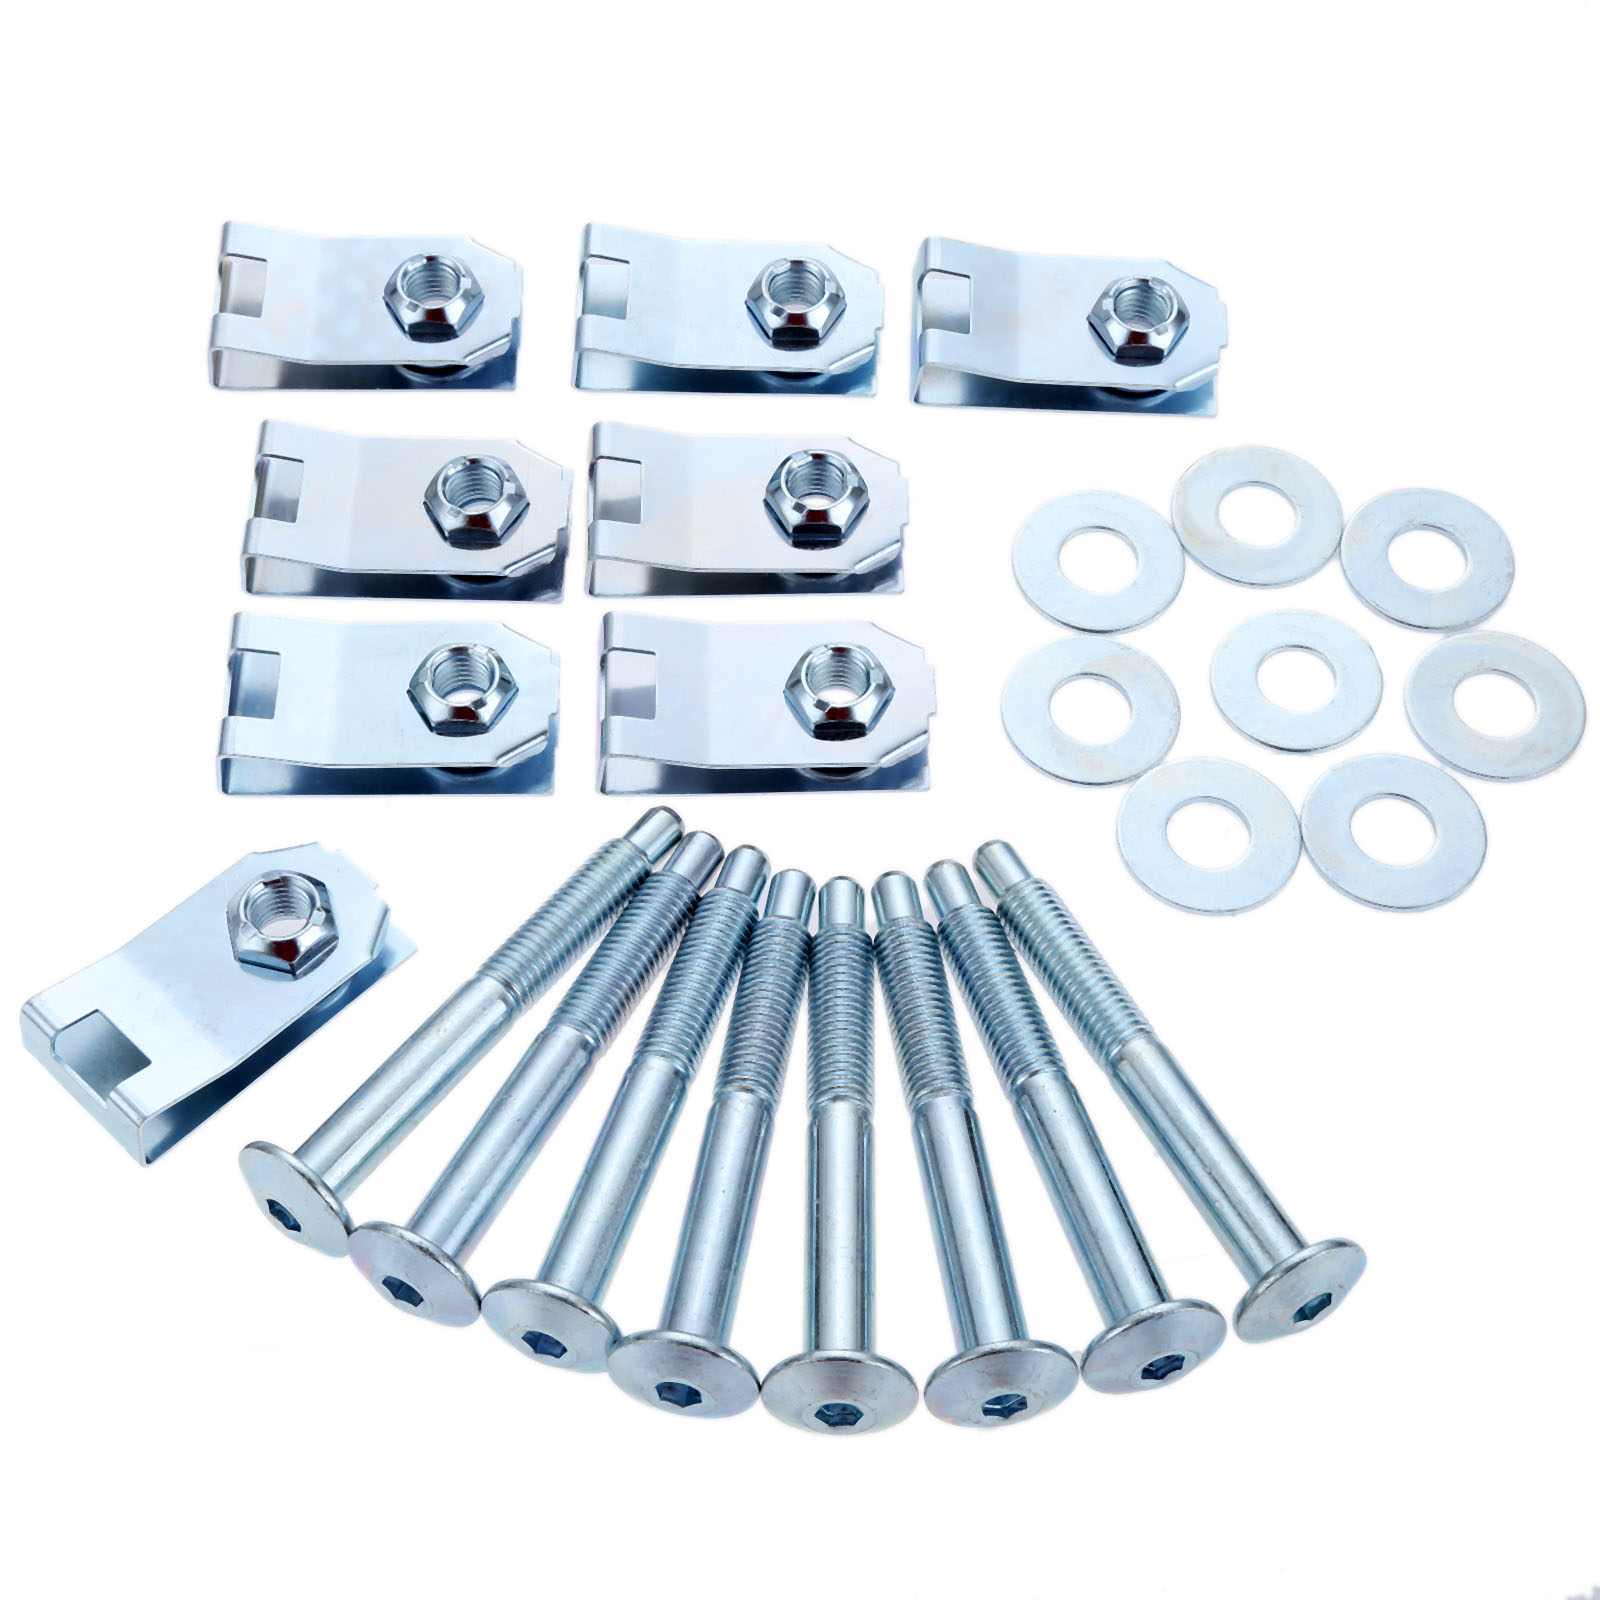 924-312 Truck Bed Mounting Hardware Kit Fit For 1997-2012 Ford F150 or Mark LT Pickup W708605S436 W709424S901